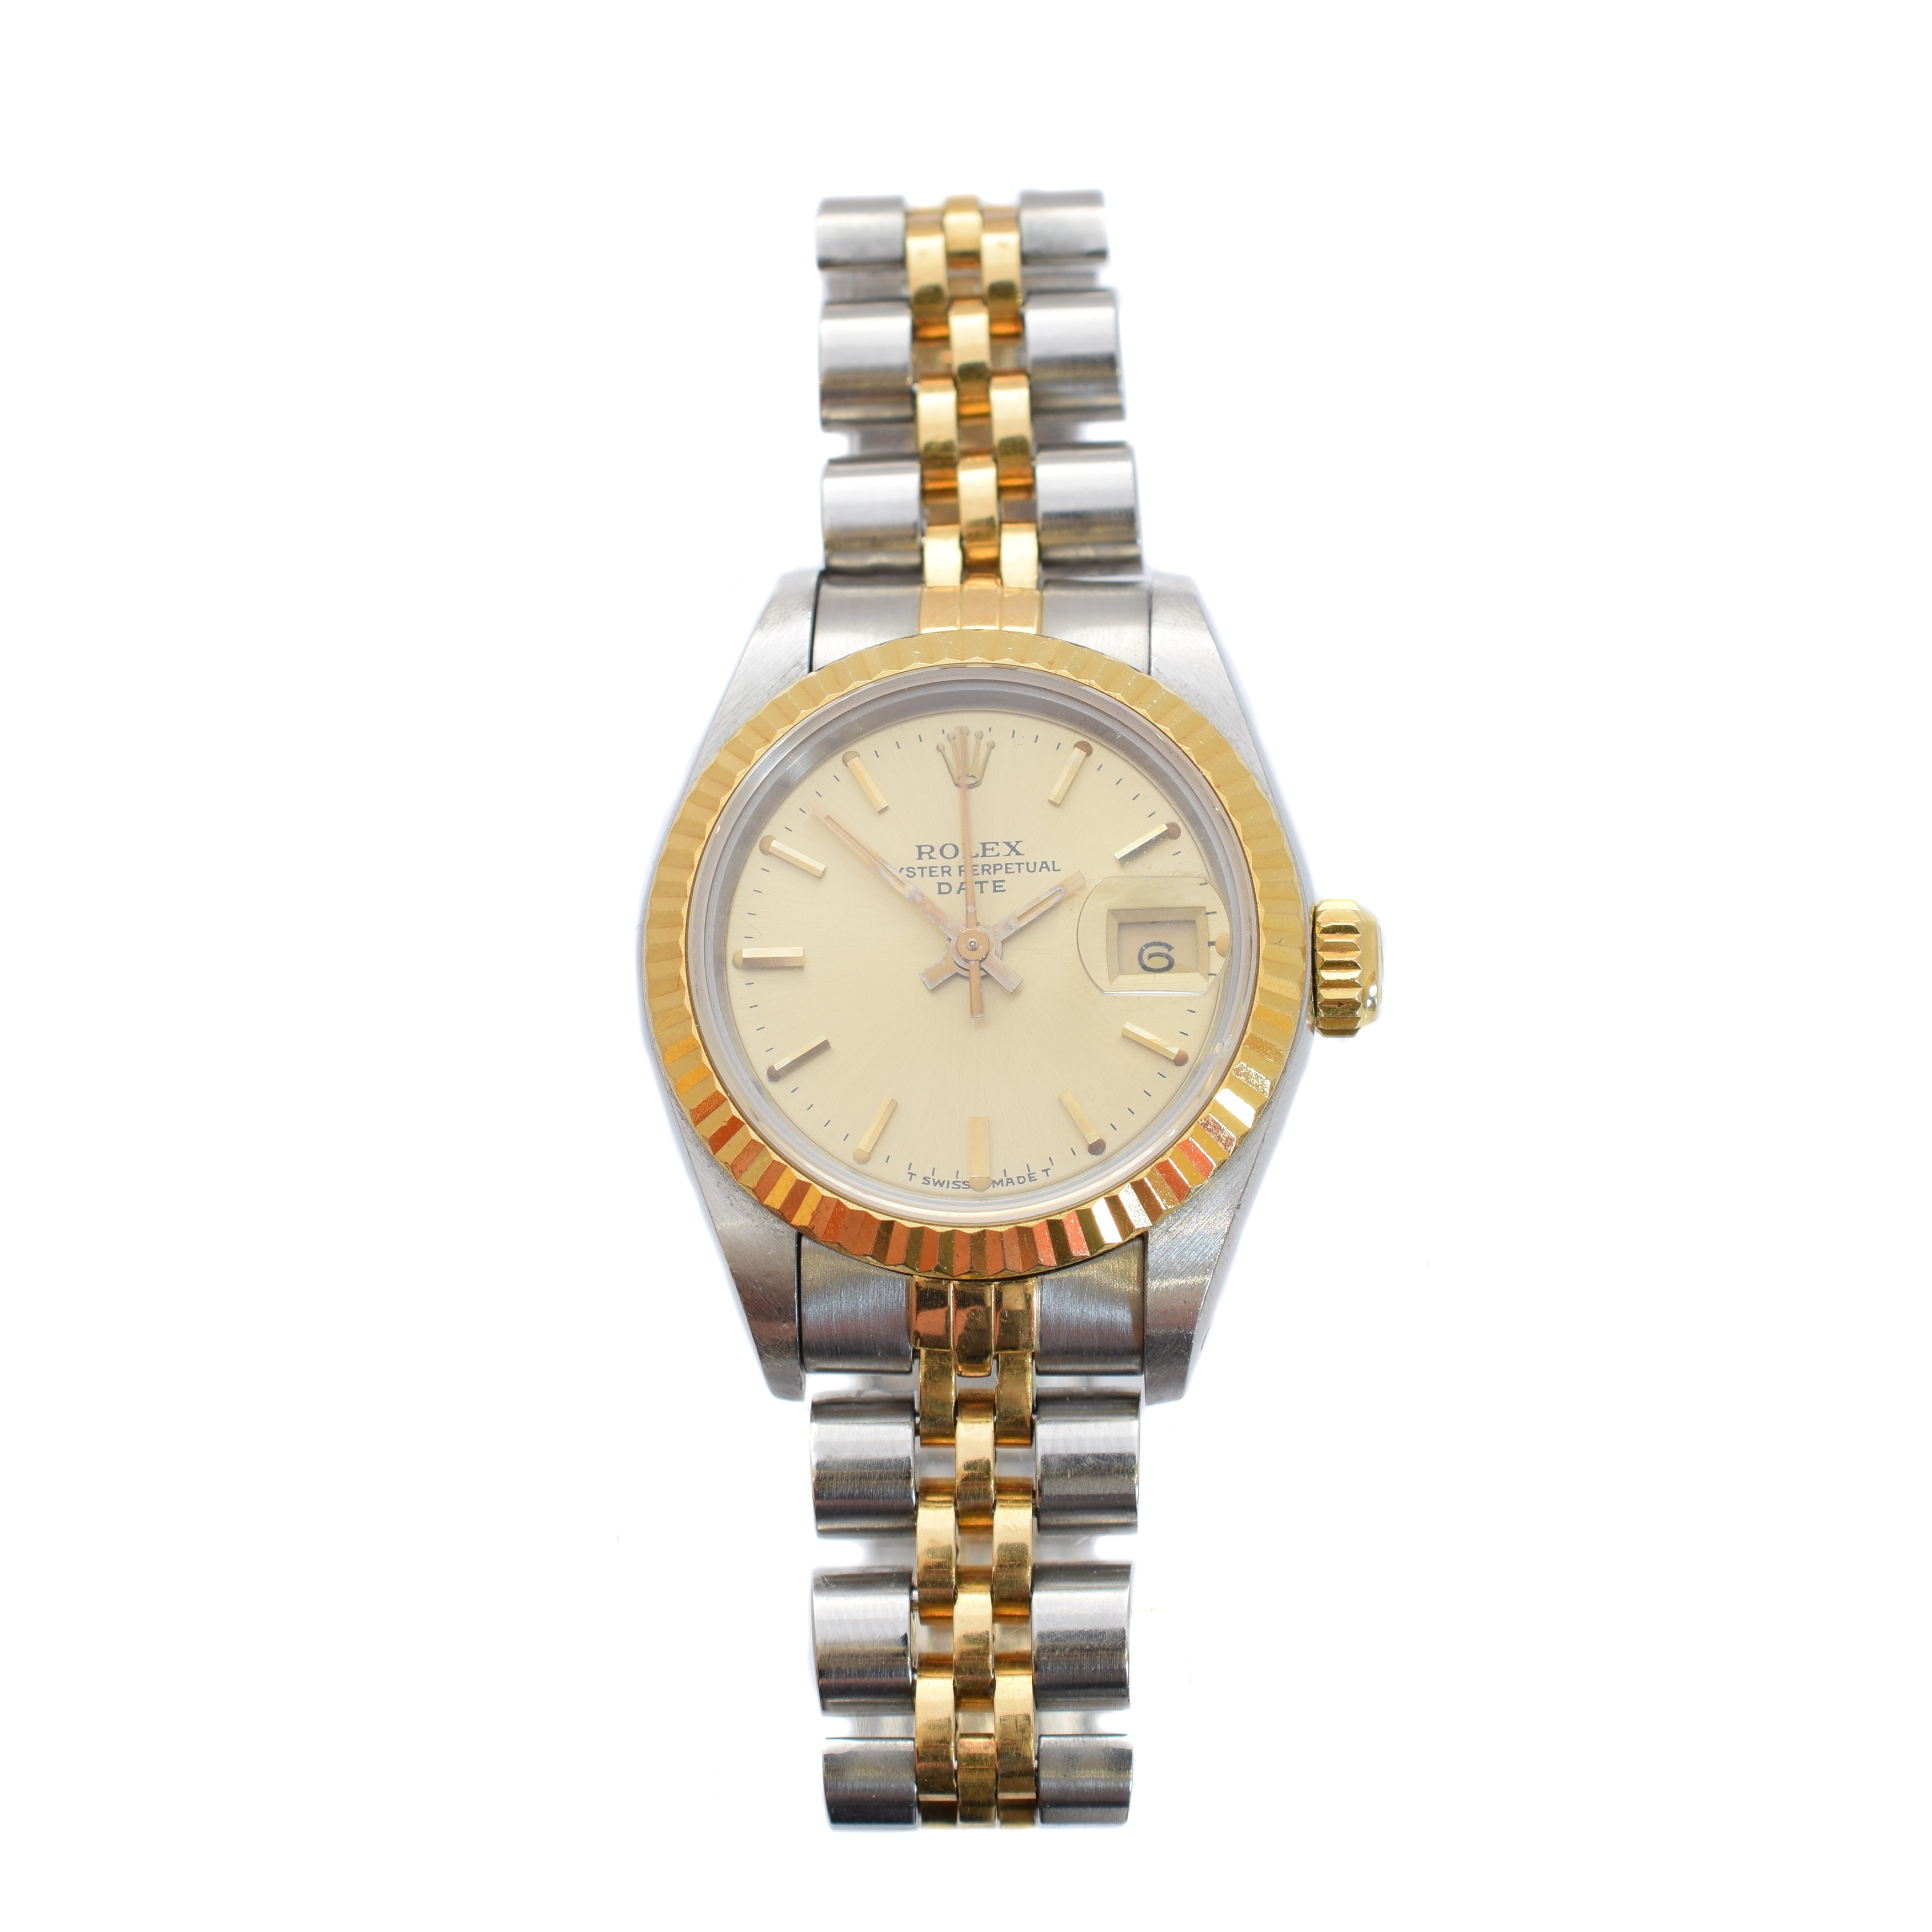 A ladies steel and gold Rolex Oyster Perpetual Datejust wristwatch, circa 1985, sold for £1,700